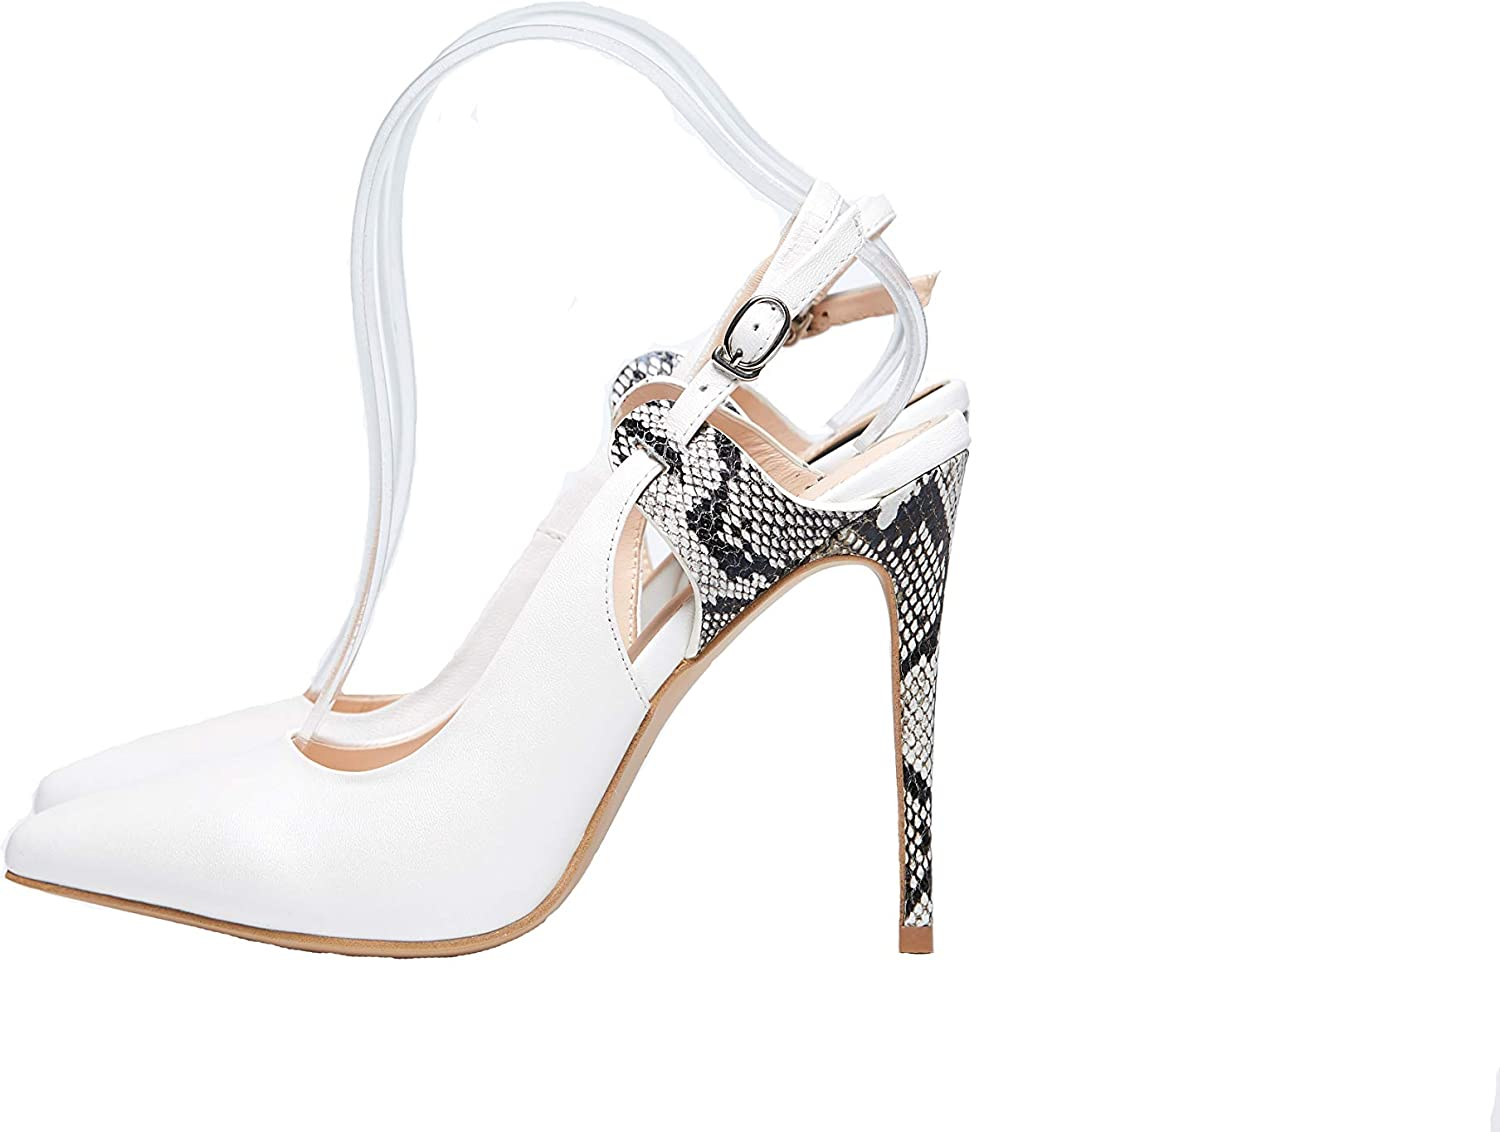 brand new hot sales many styles Amazon.com: Bizare JADA Classy White|High Pointed|Court Shoes: Shoes